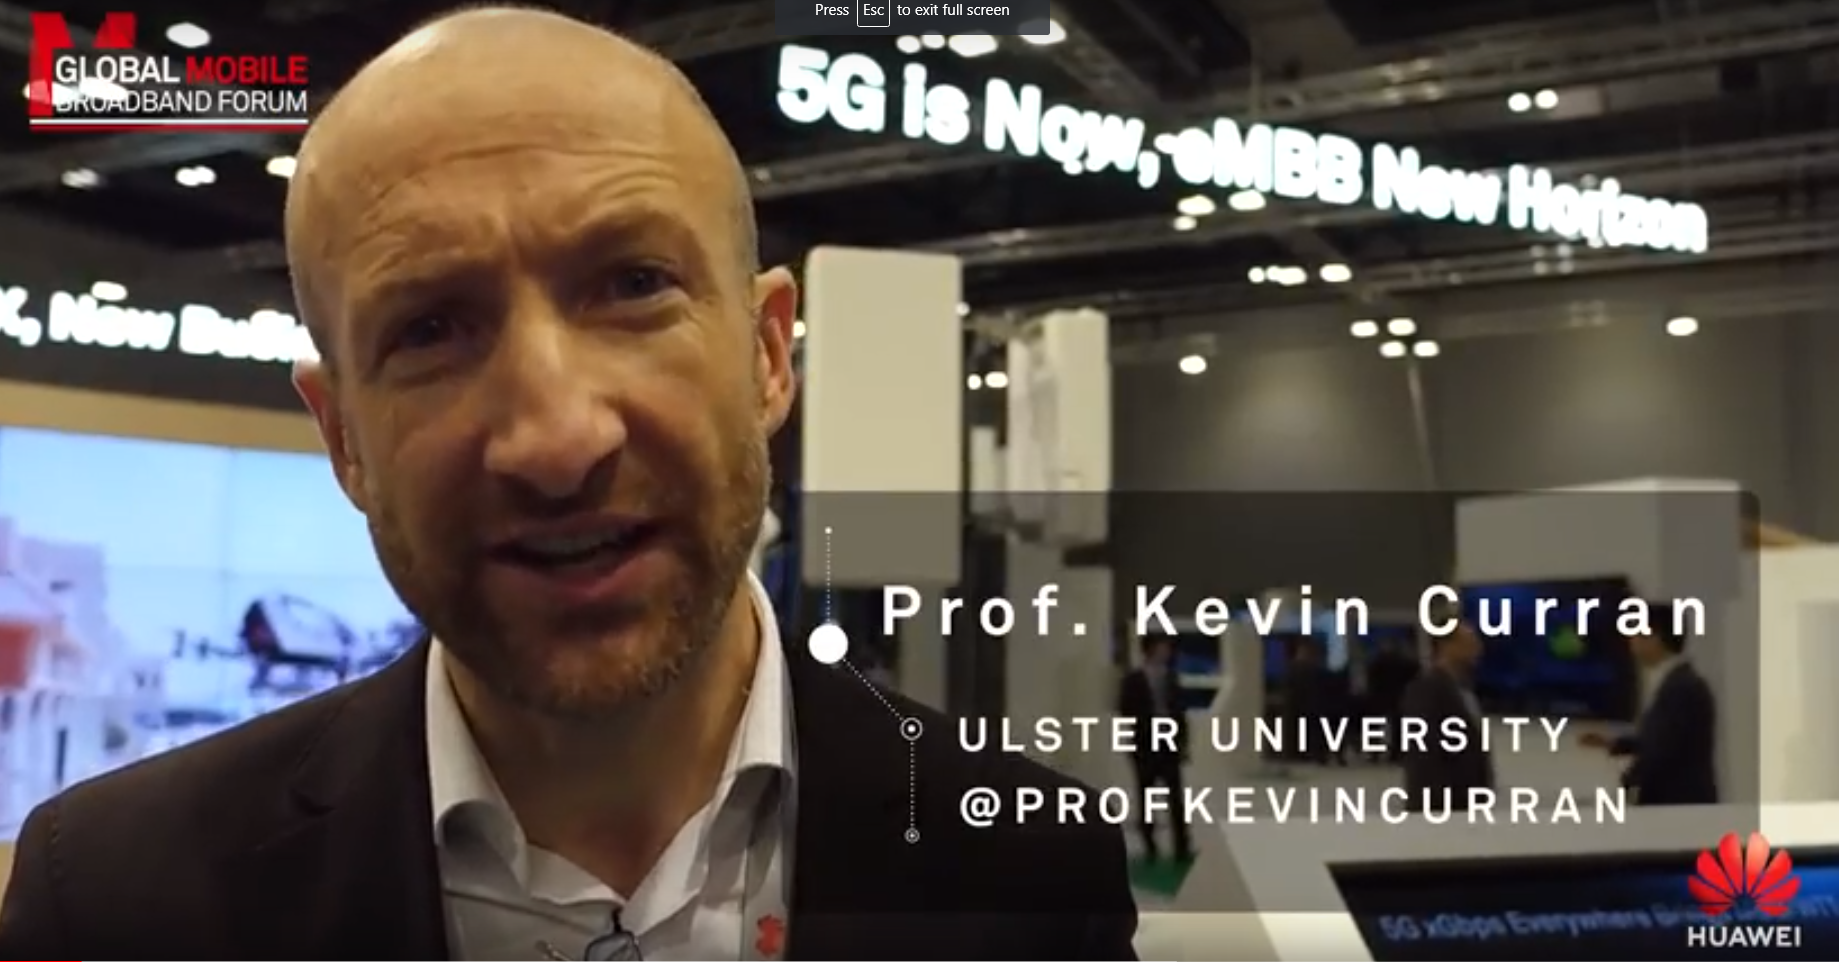 Professor Kevin Curran, Ulster University interview with Huawei at Mobile Broadband Forum 2018 about the potential for 5G technology in the future.